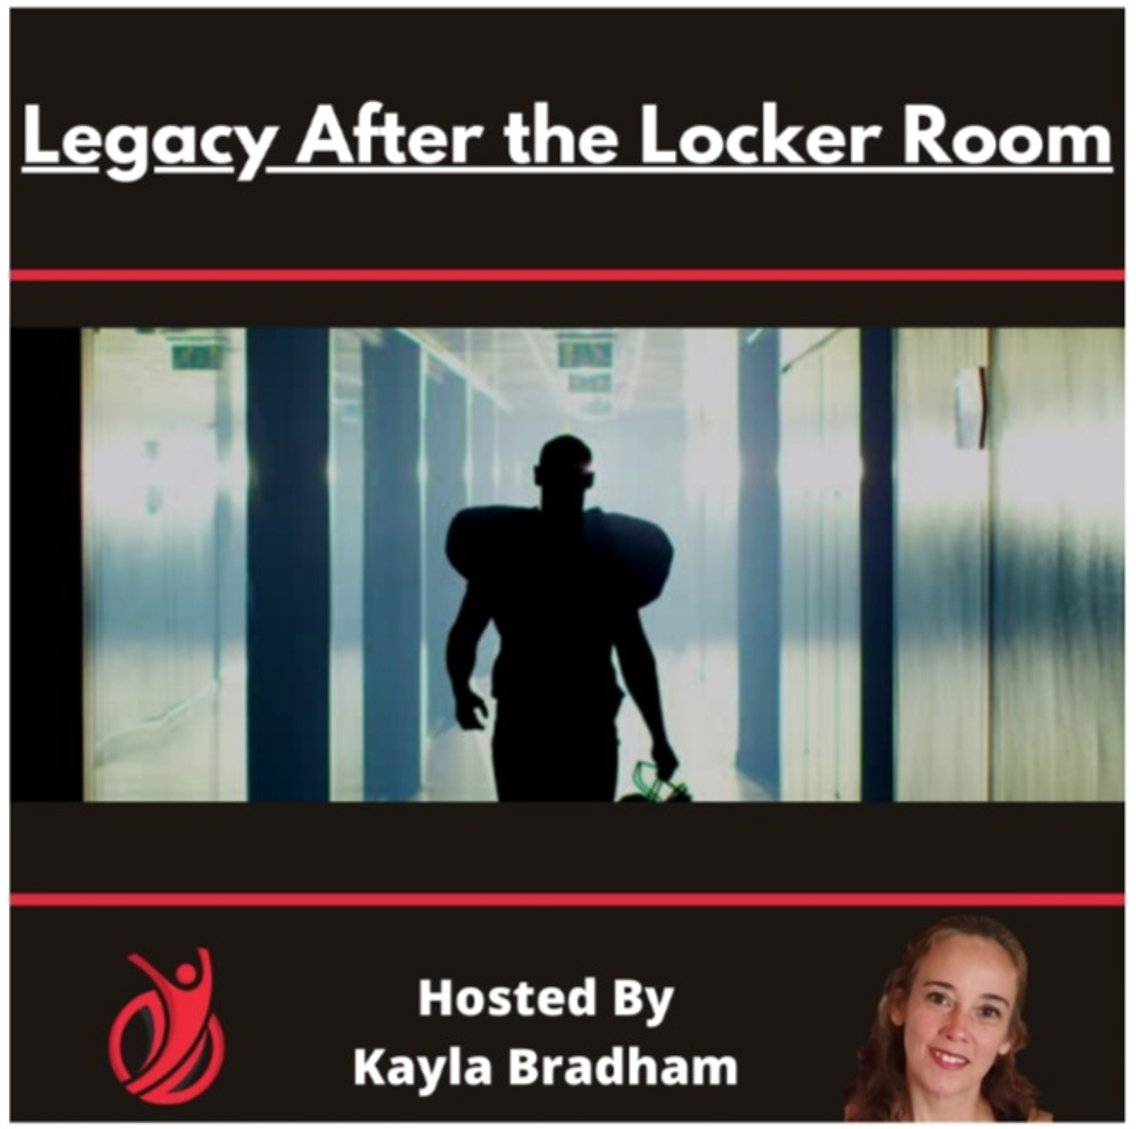 Legacy After the Locker Room - Cover Image